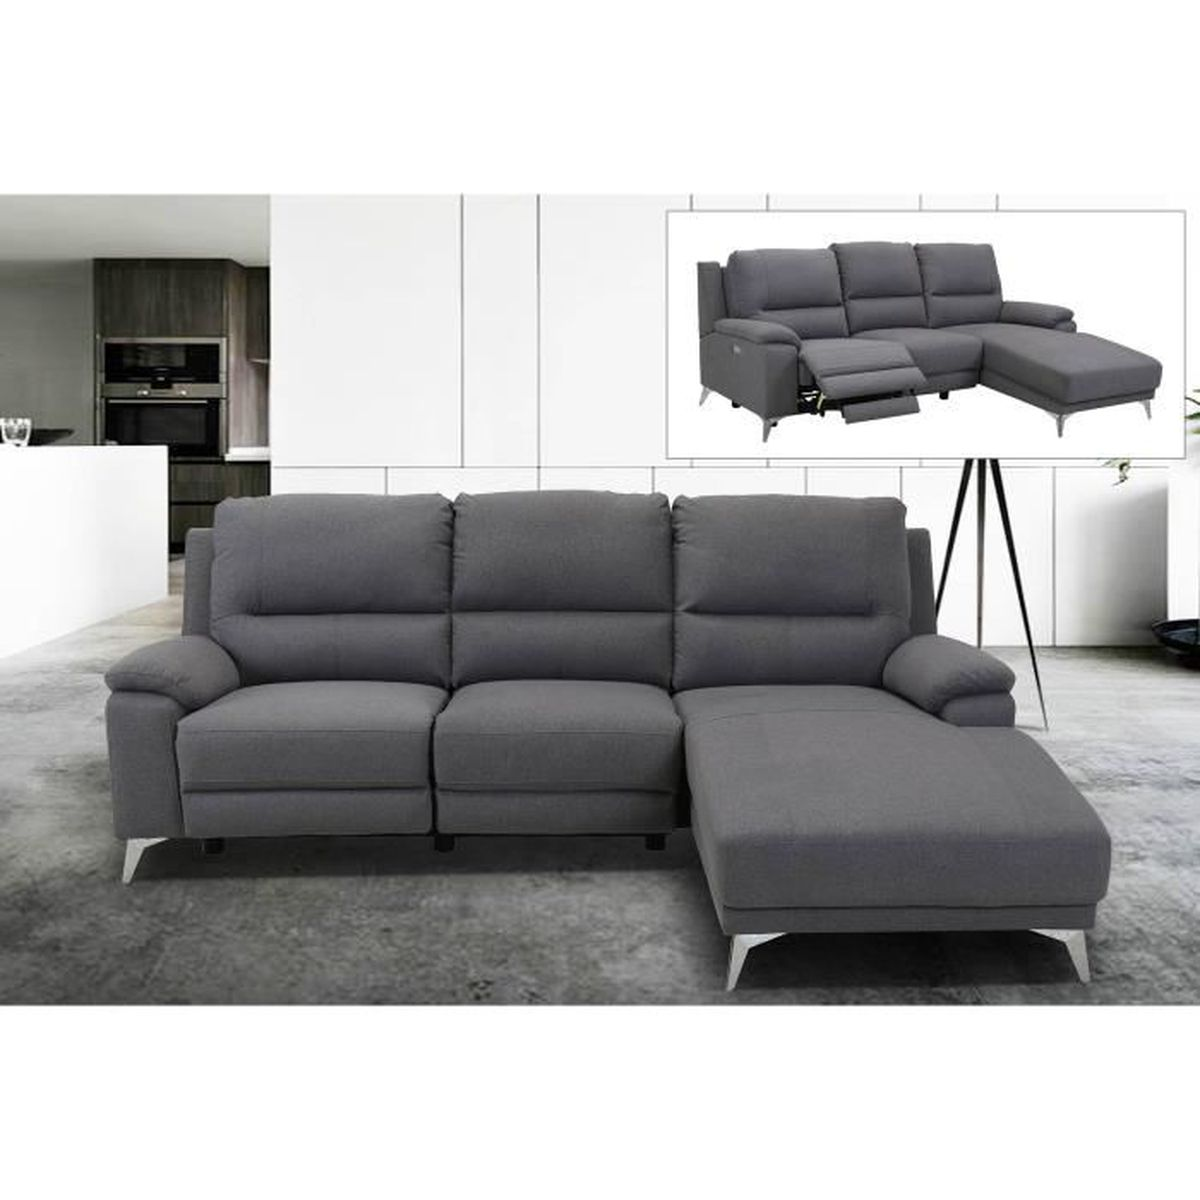 magasin en ligne 003bc 744b9 Canape angle tissus relax